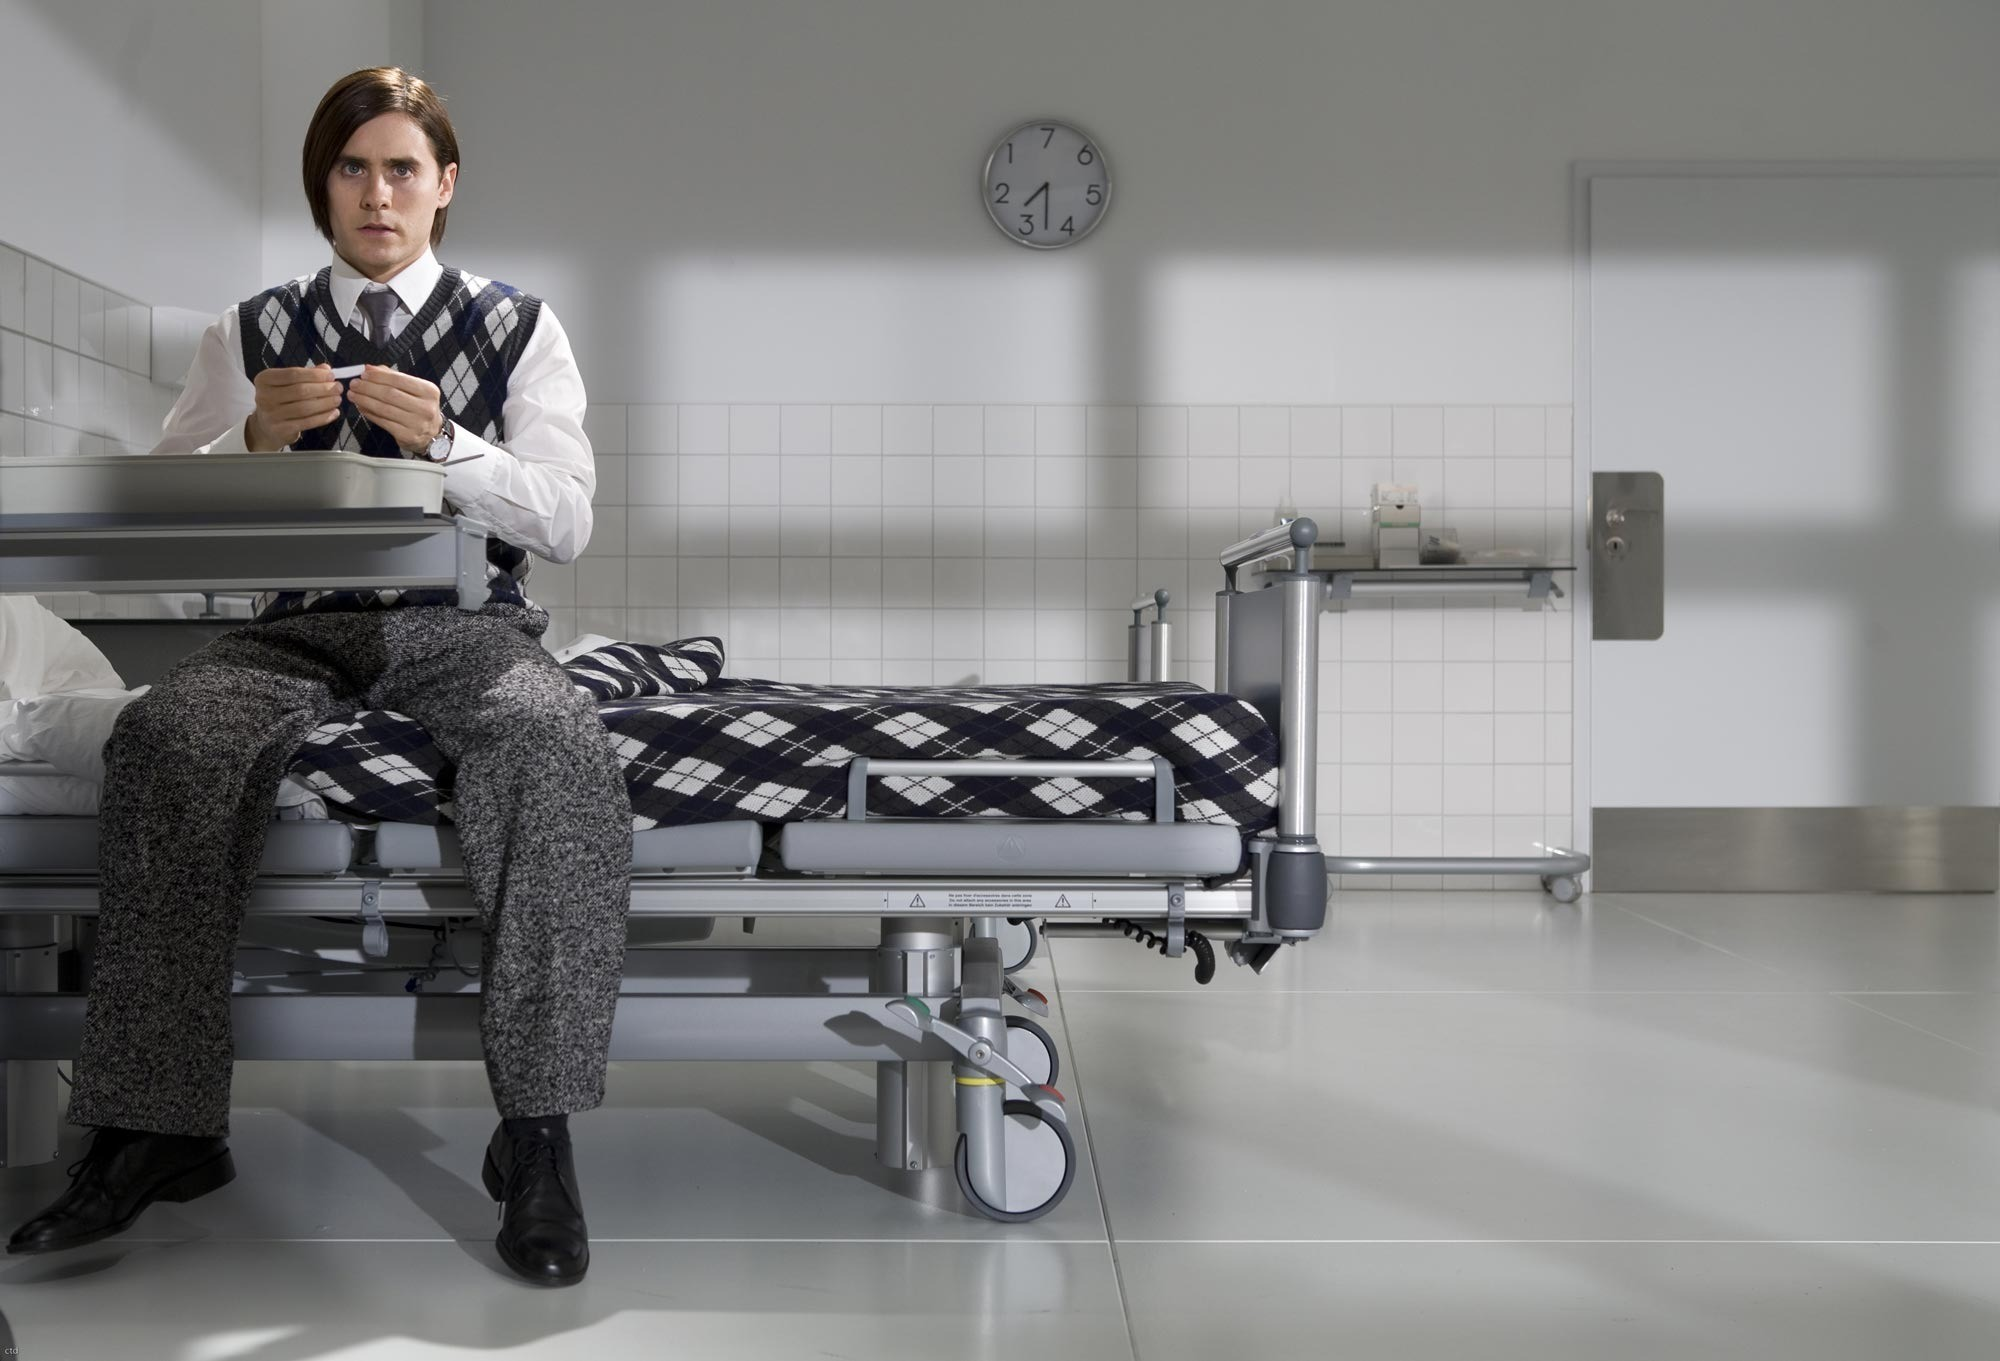 Film per il weekend: Mr.Nobody #3